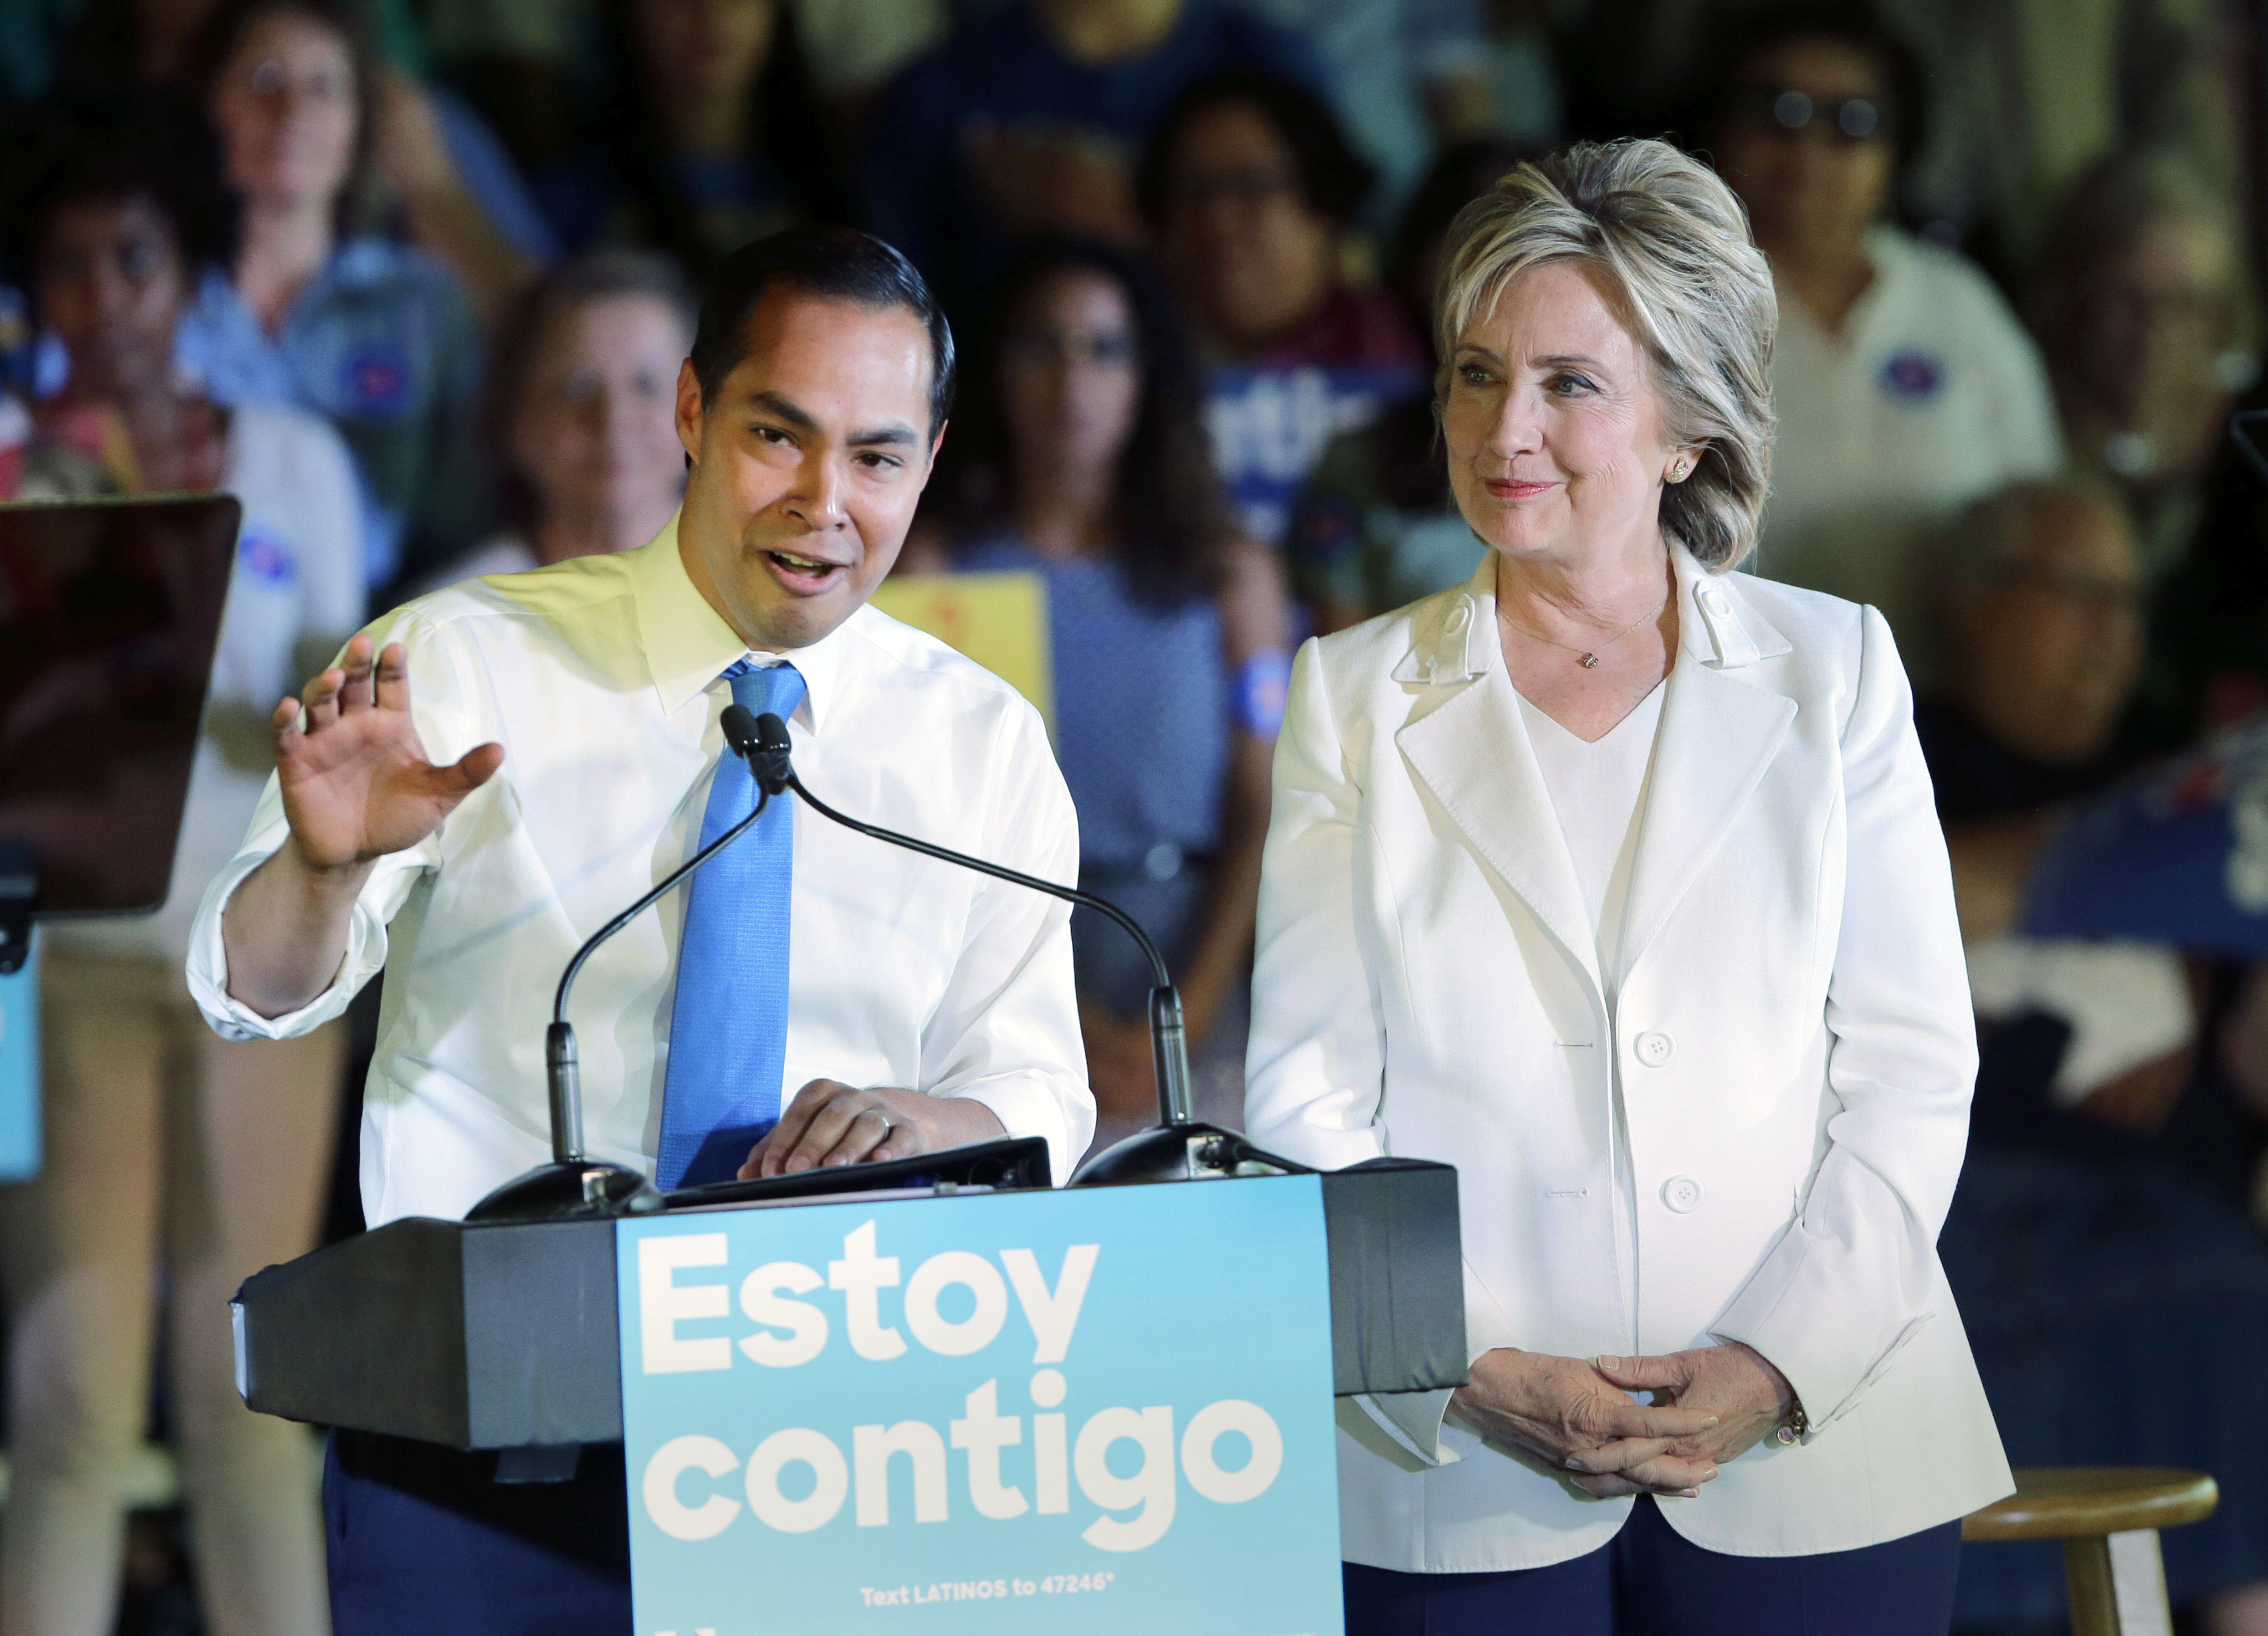 FILE - In this Oct. 15, 2015 file photo, Housing and Urban Development Secretary Julian Castro, left, speaks during a campaign event for Democratic presidential candidate Hillary Rodham Clinton, right, in San Antonio. Castro is returning home Friday, June 17, 2016, swarmed by the same speculation about whether he could be Hillary Clinton's running mate this fall. (AP Photo/Eric Gay, File)